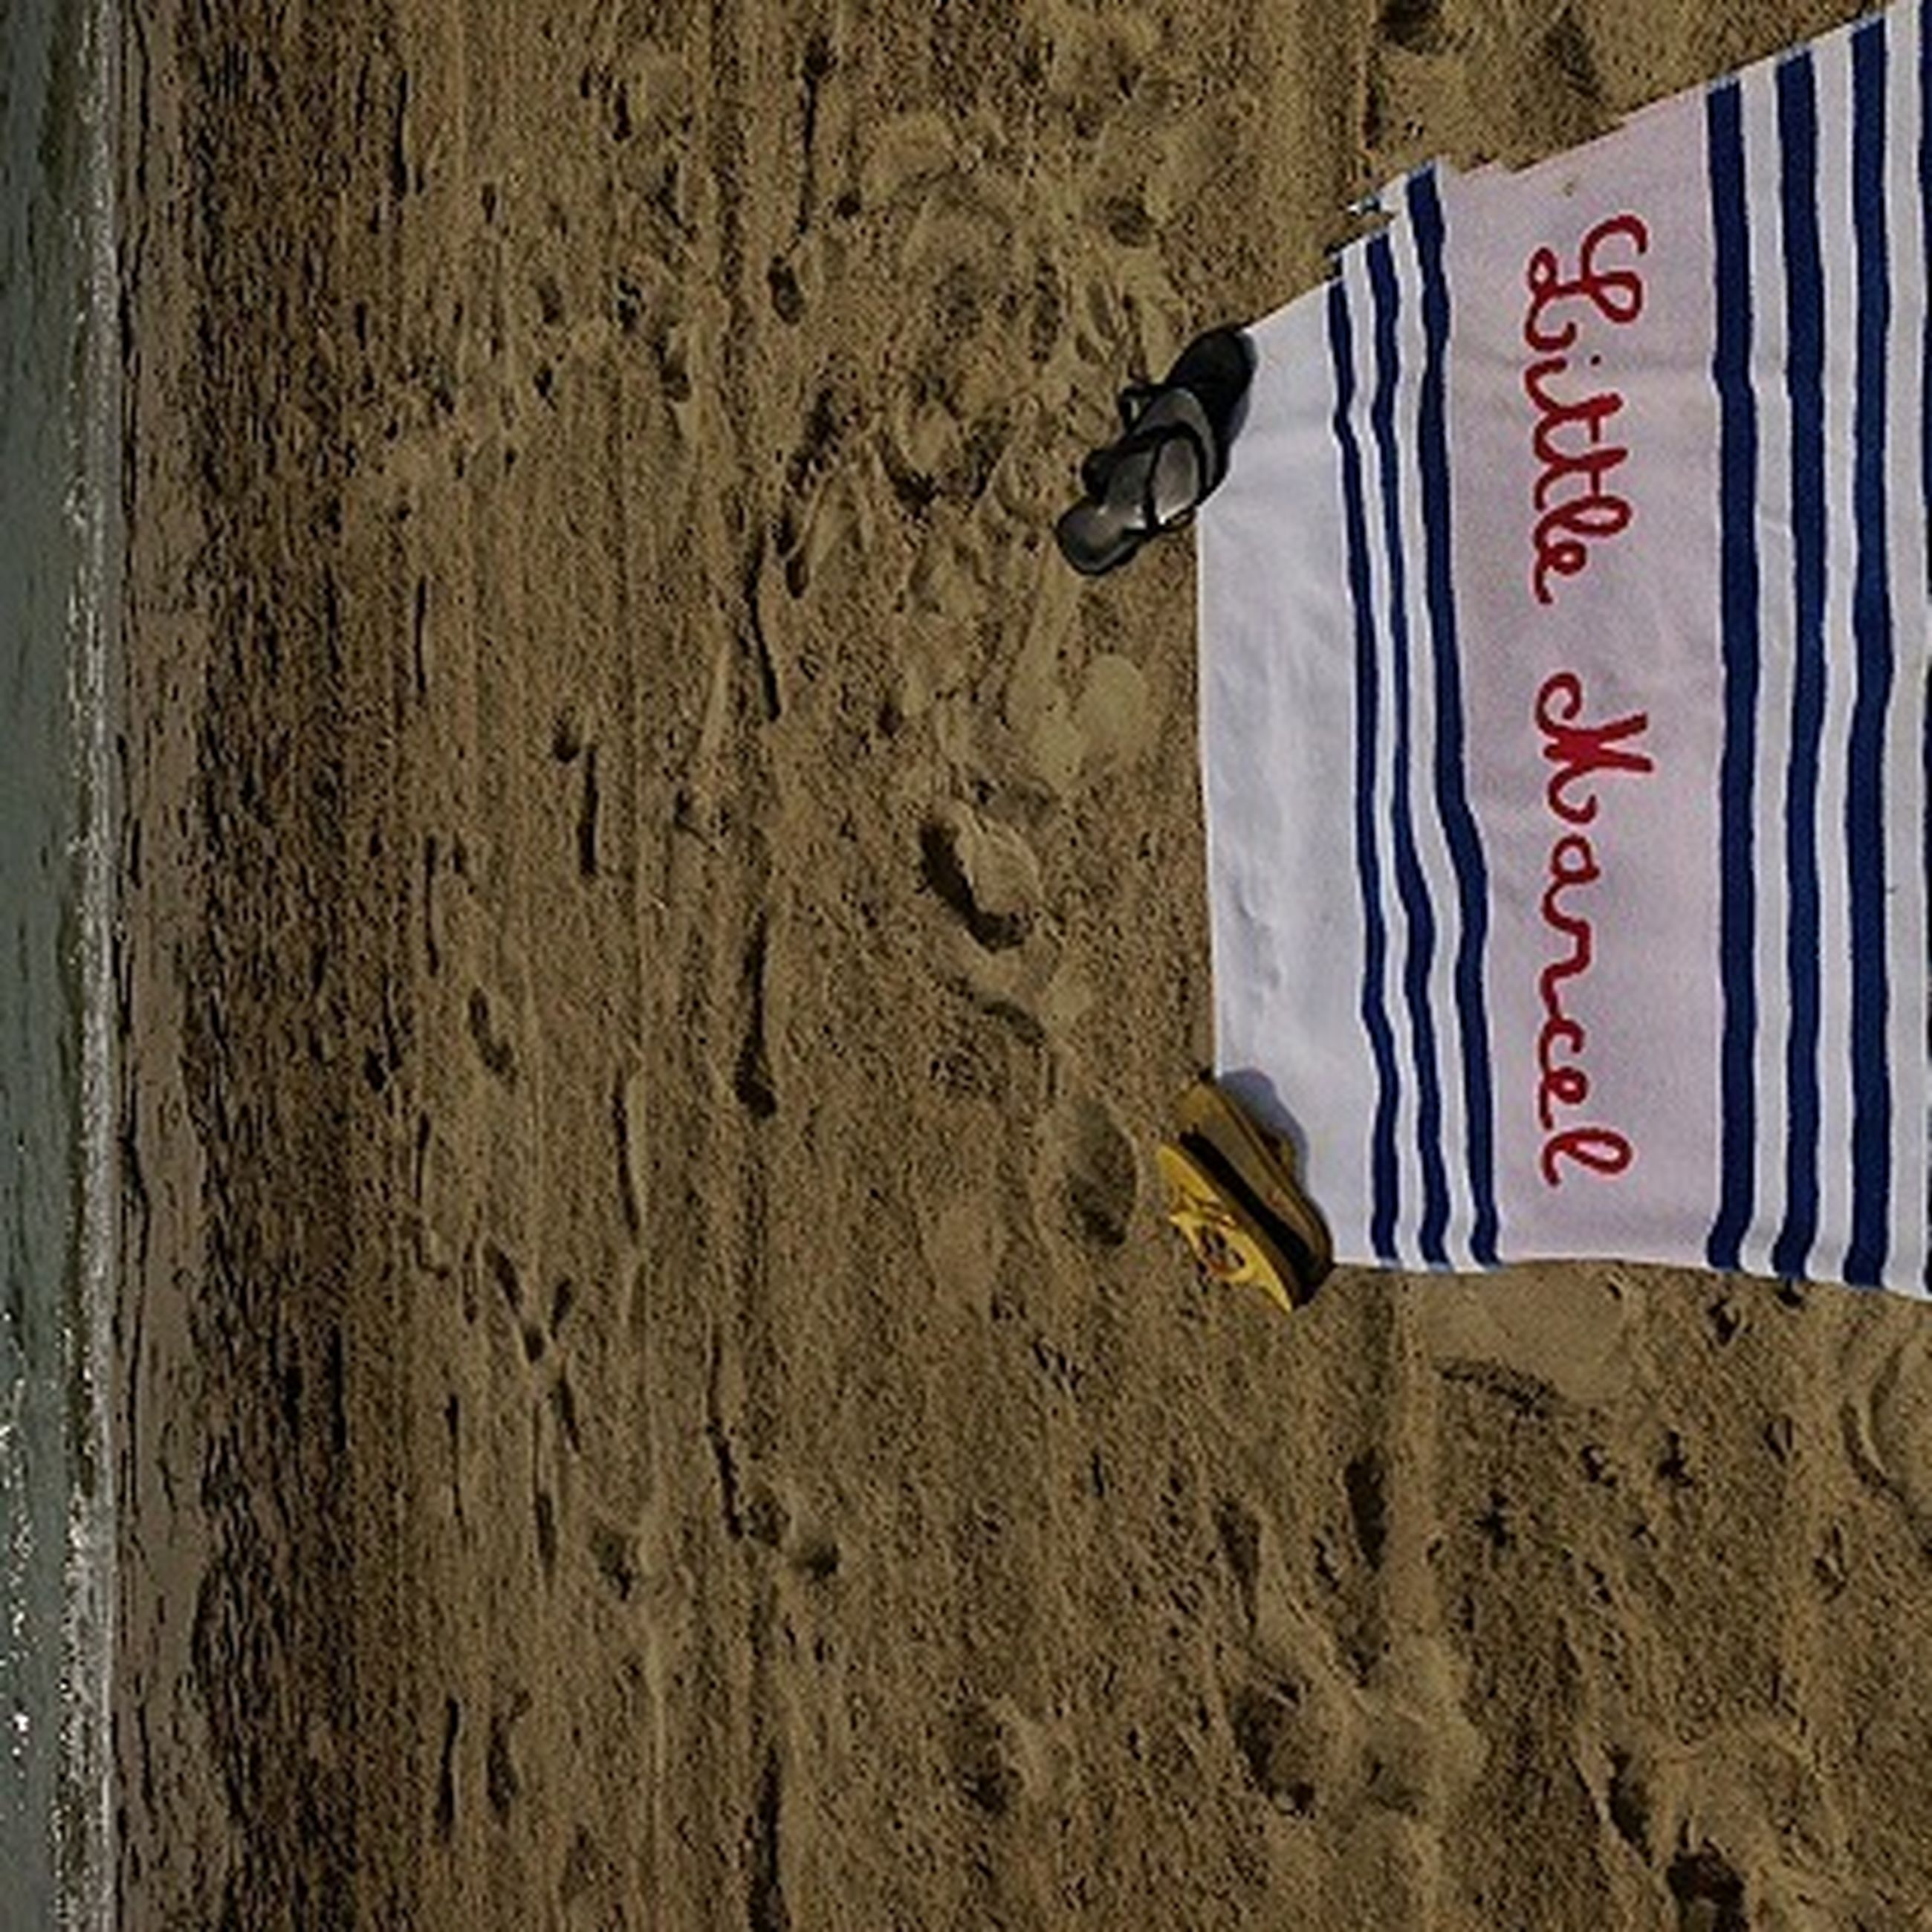 text, beach, sand, western script, communication, shore, sea, wave, day, water, outdoors, sunlight, guidance, surf, capital letter, footprint, sign, no people, close-up, wall - building feature